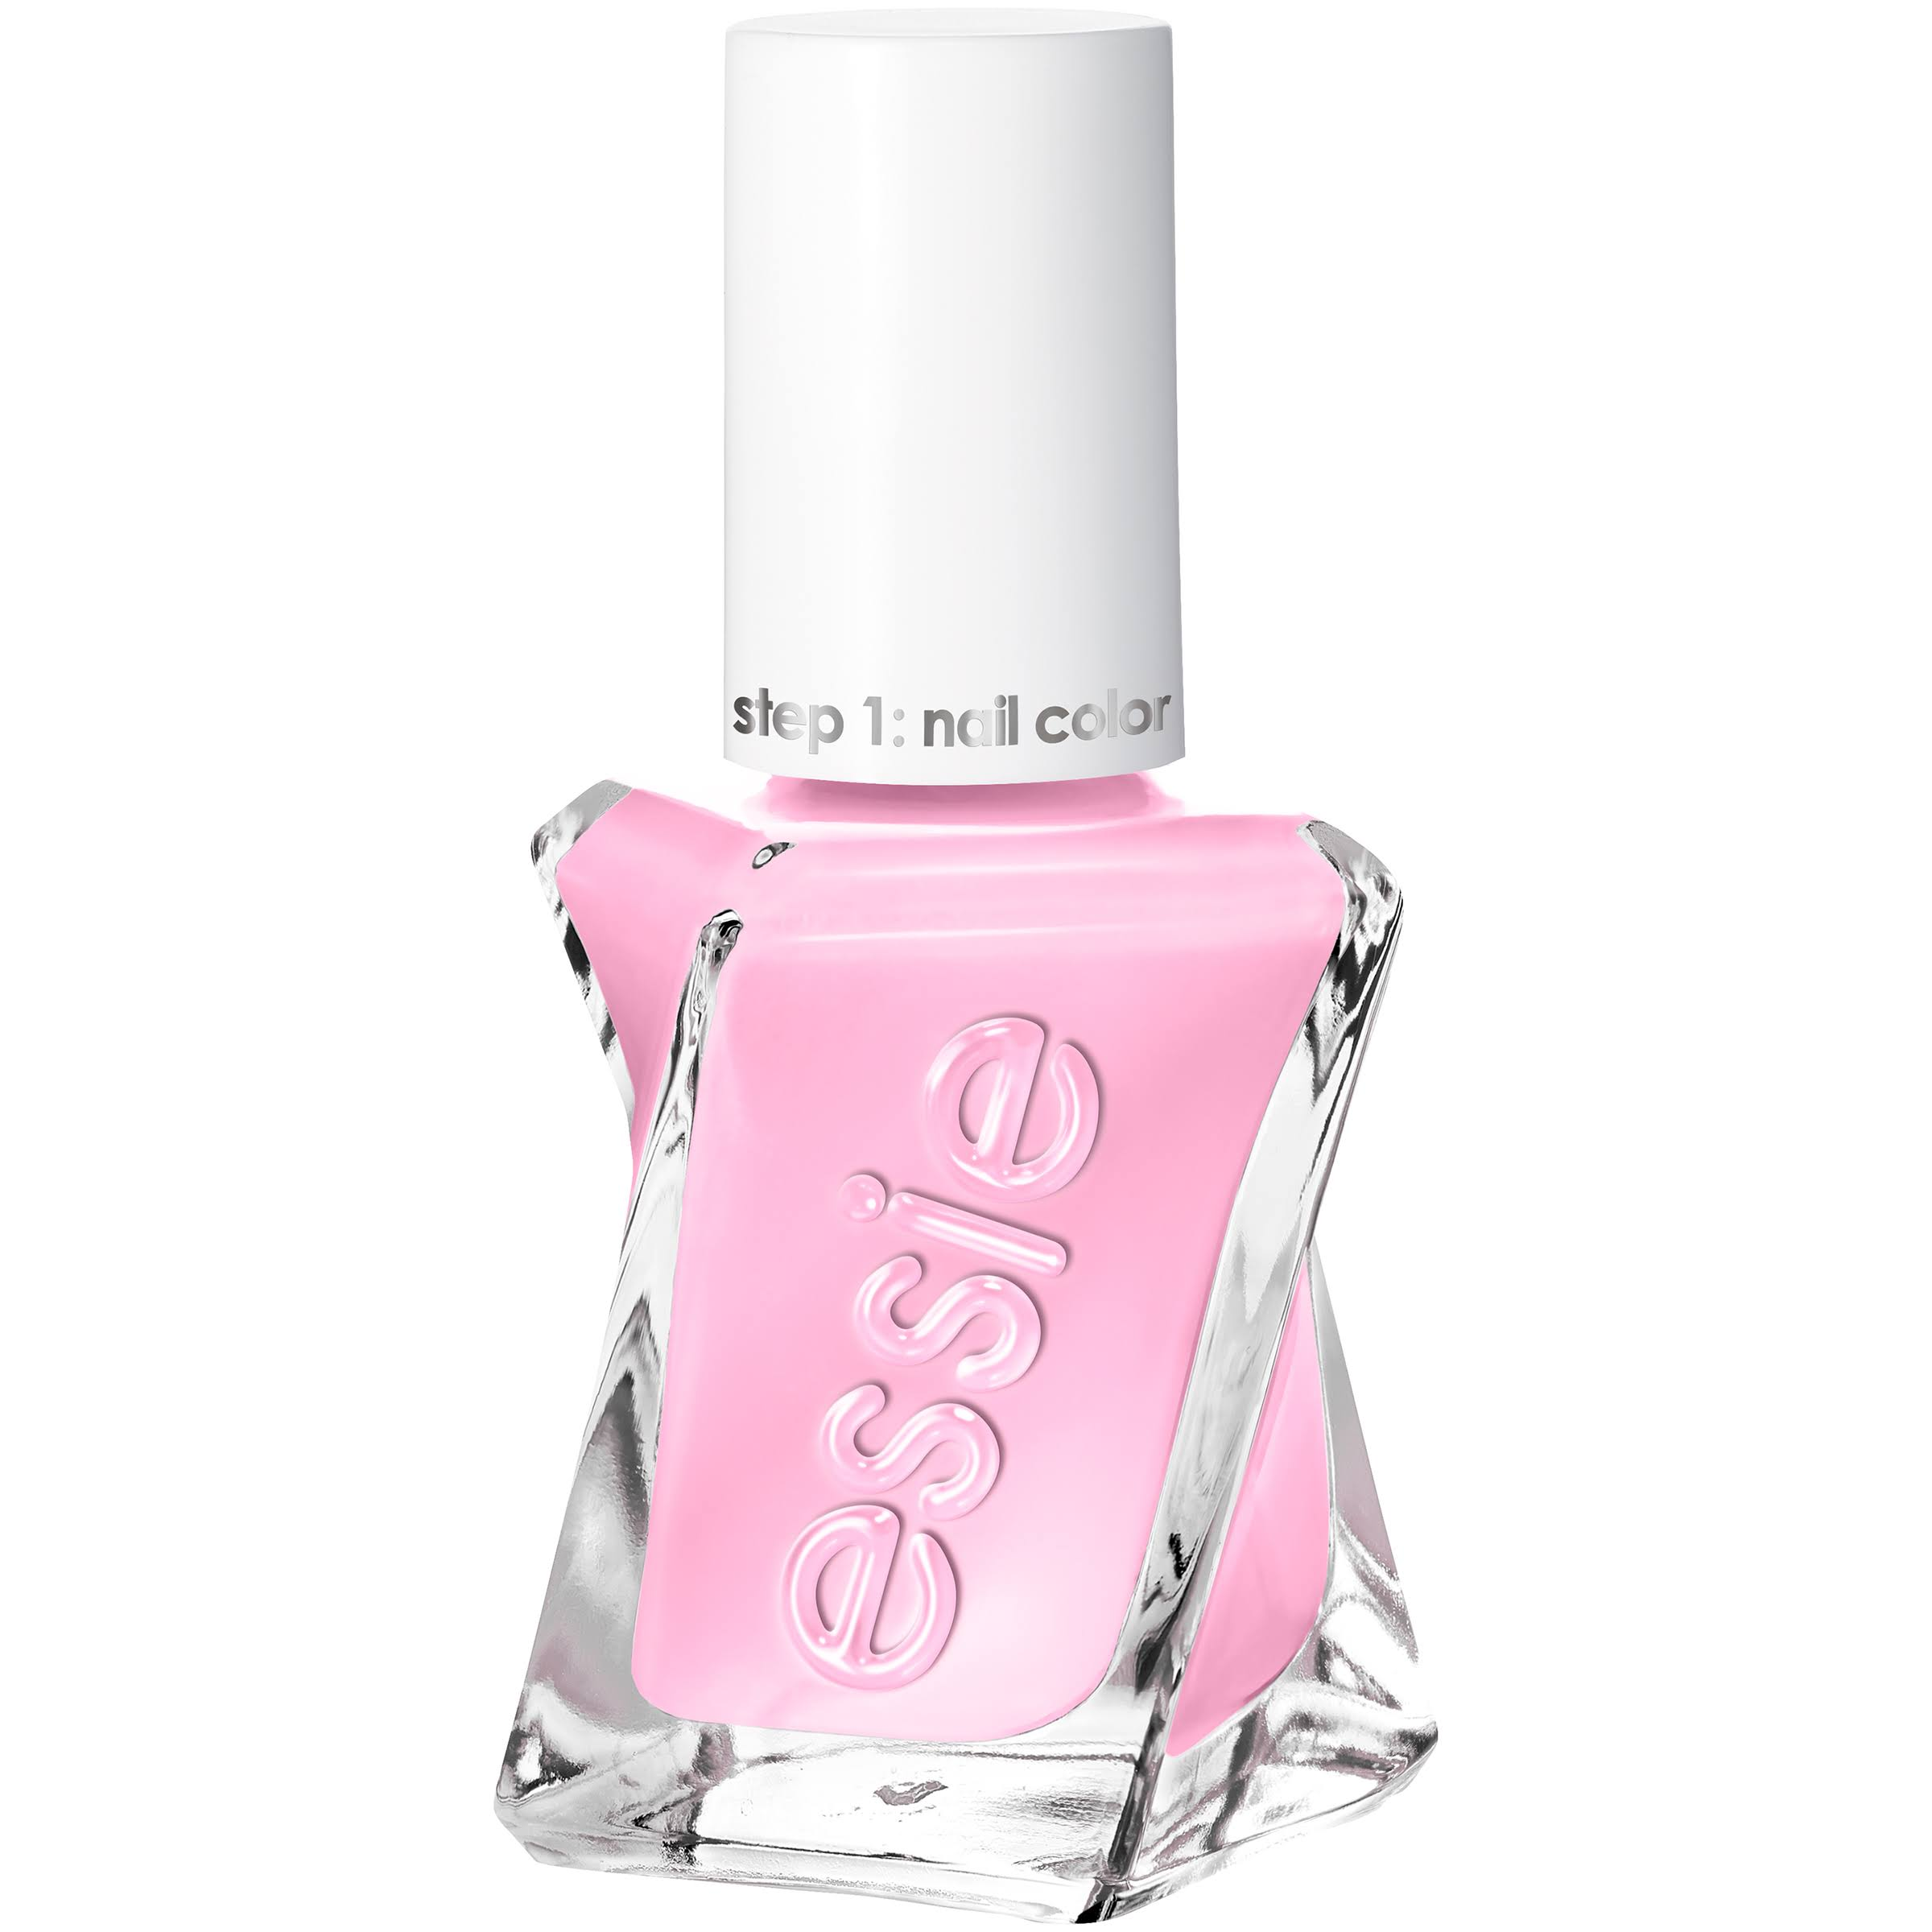 Essie Nail Color, Pinned to Perfection 146 - 13.5 ml